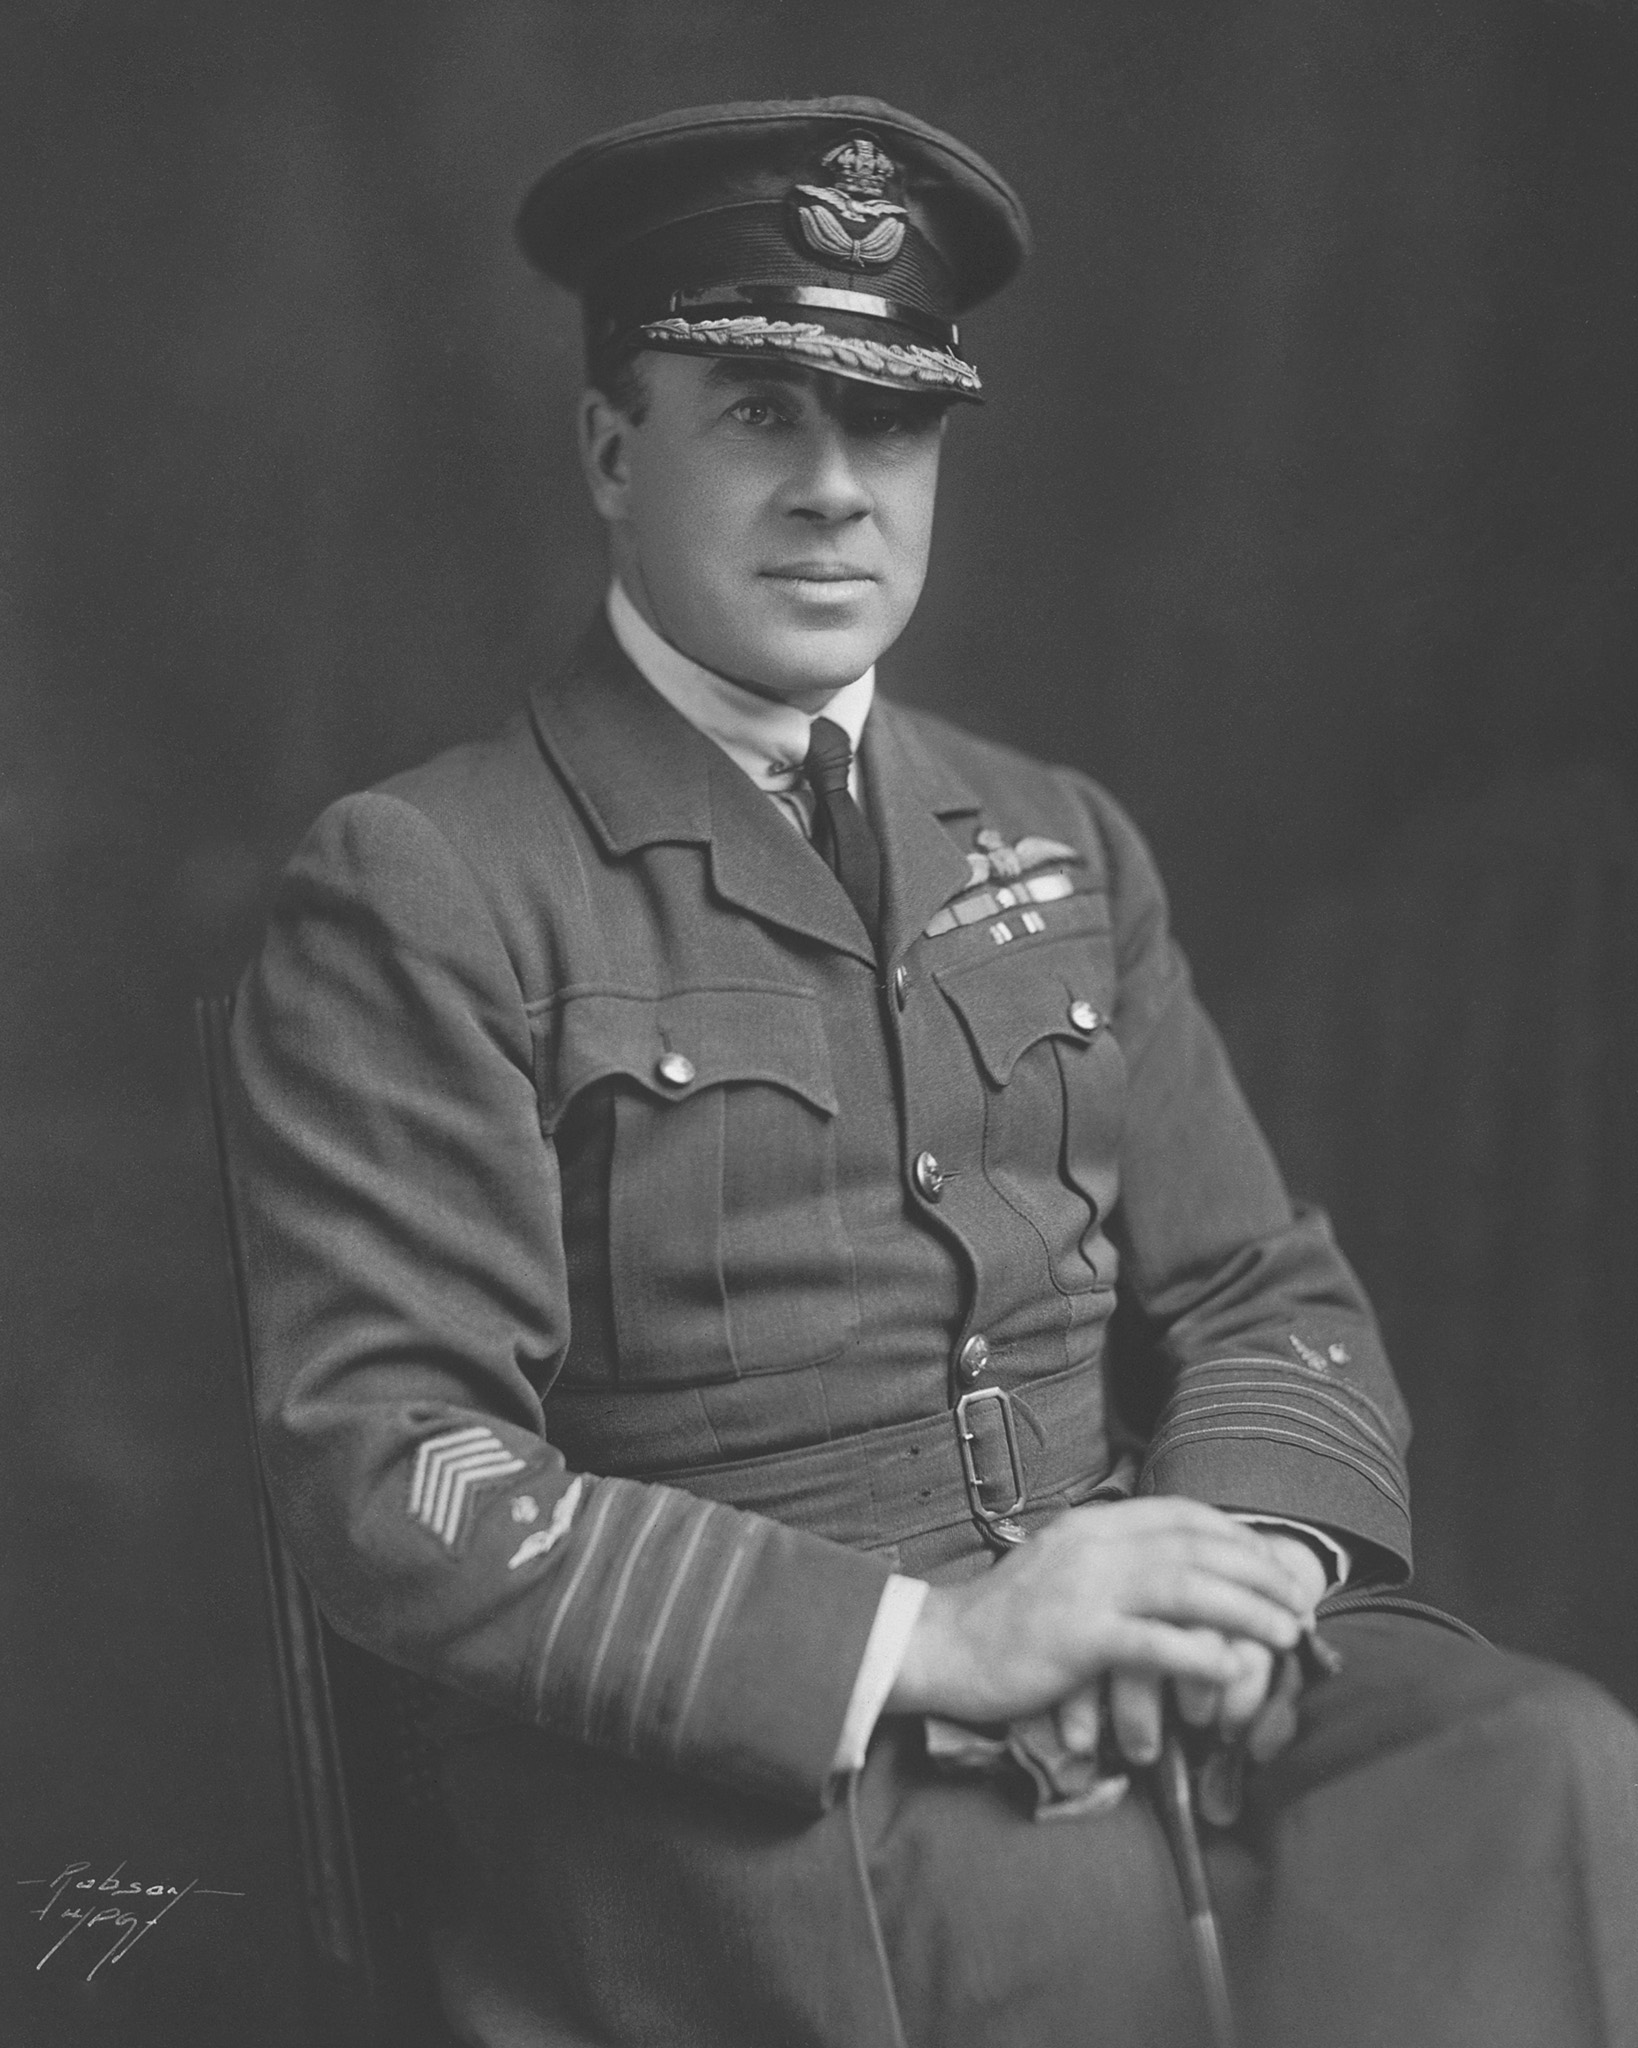 Redford « Red » Mulock, de Winnipeg, au Manitoba, a commandé le 3e Escadron du Royal Naval Air Service, mis temporairement à la disposition du Royal Flying Corps pendant la période qui a précédé la bataille de la crête de Vimy. La photo ci-dessus a été prise vers la fin de la Seconde Guerre mondiale, après la formation de la Royal Air Force. PHOTO : Archives du MDN, PMR71-405